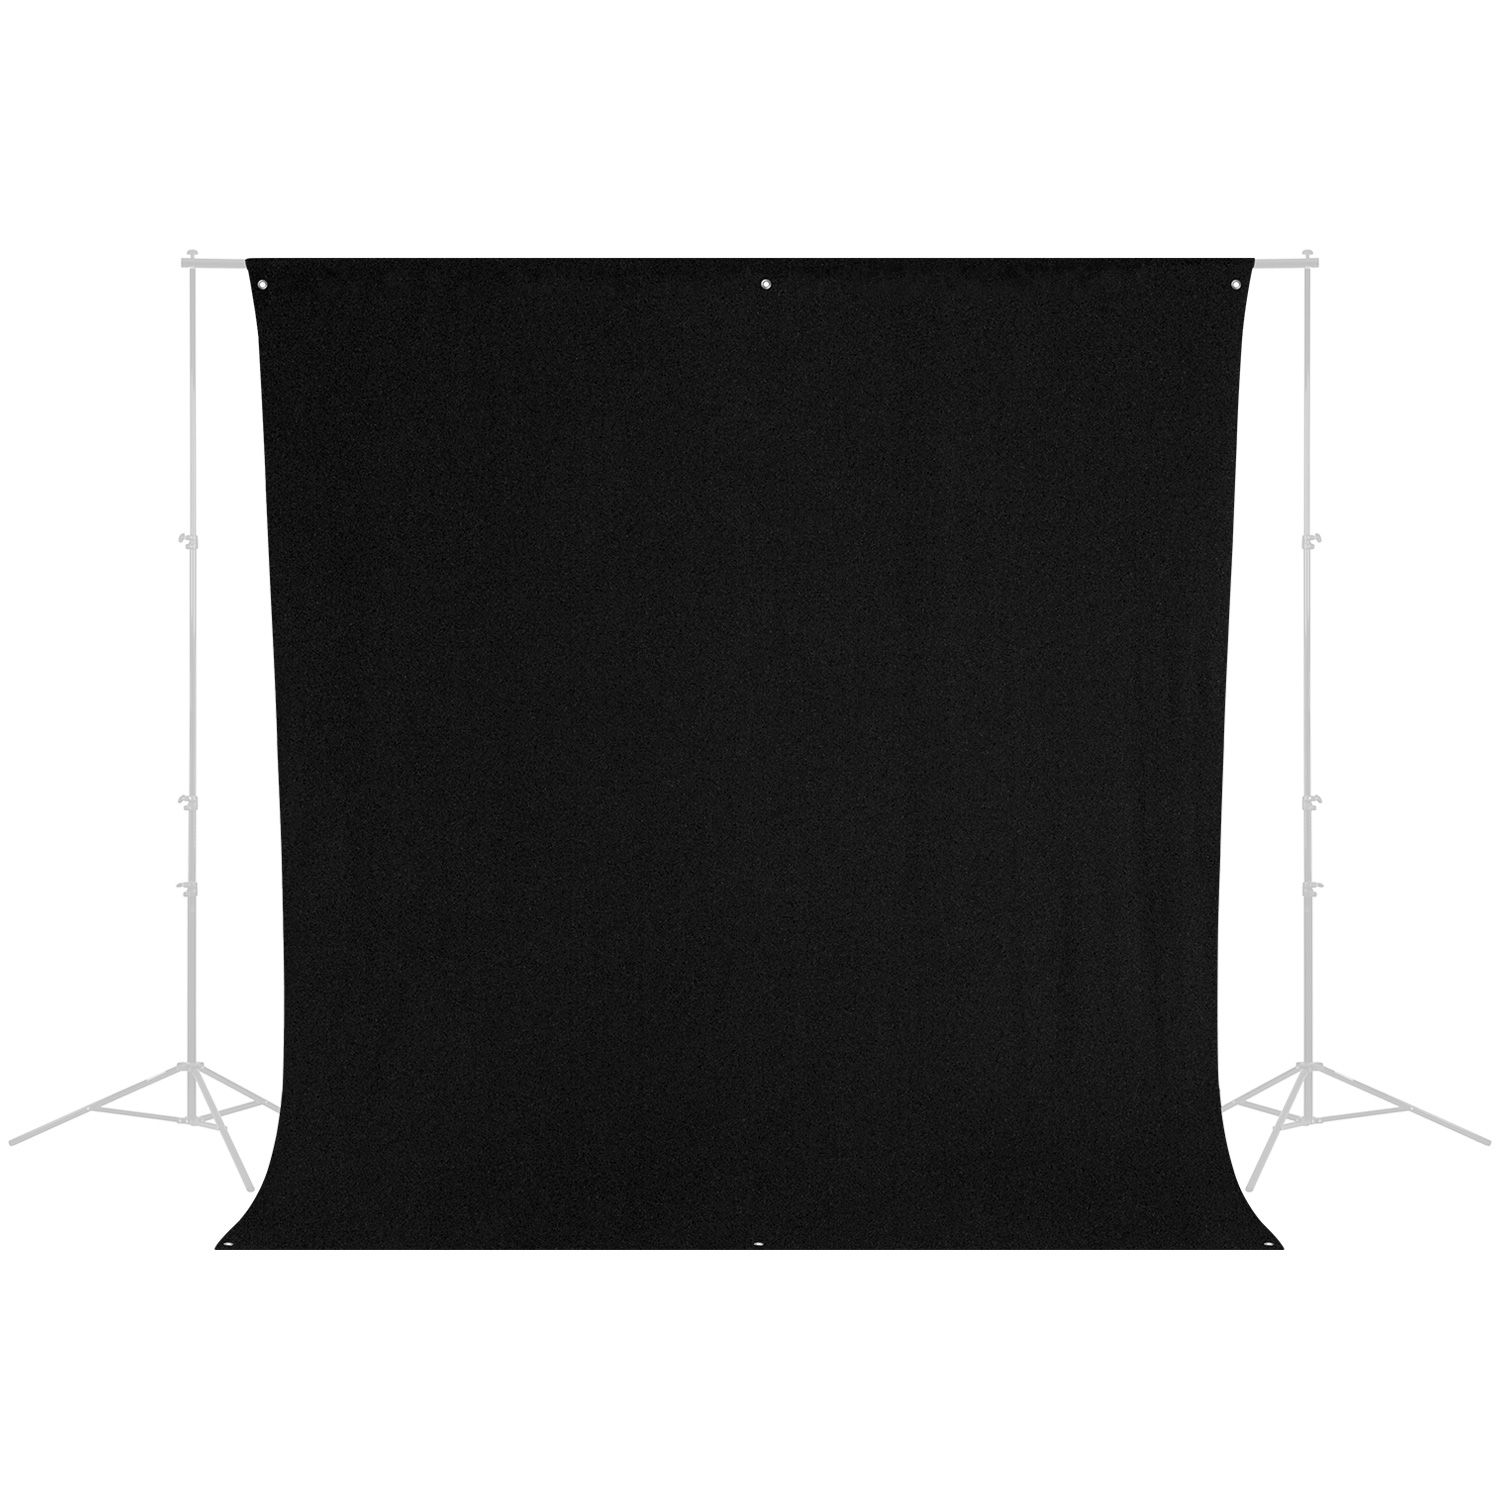 9' x 10' Wrinkle-Resistant Backdrop (Rich Black)